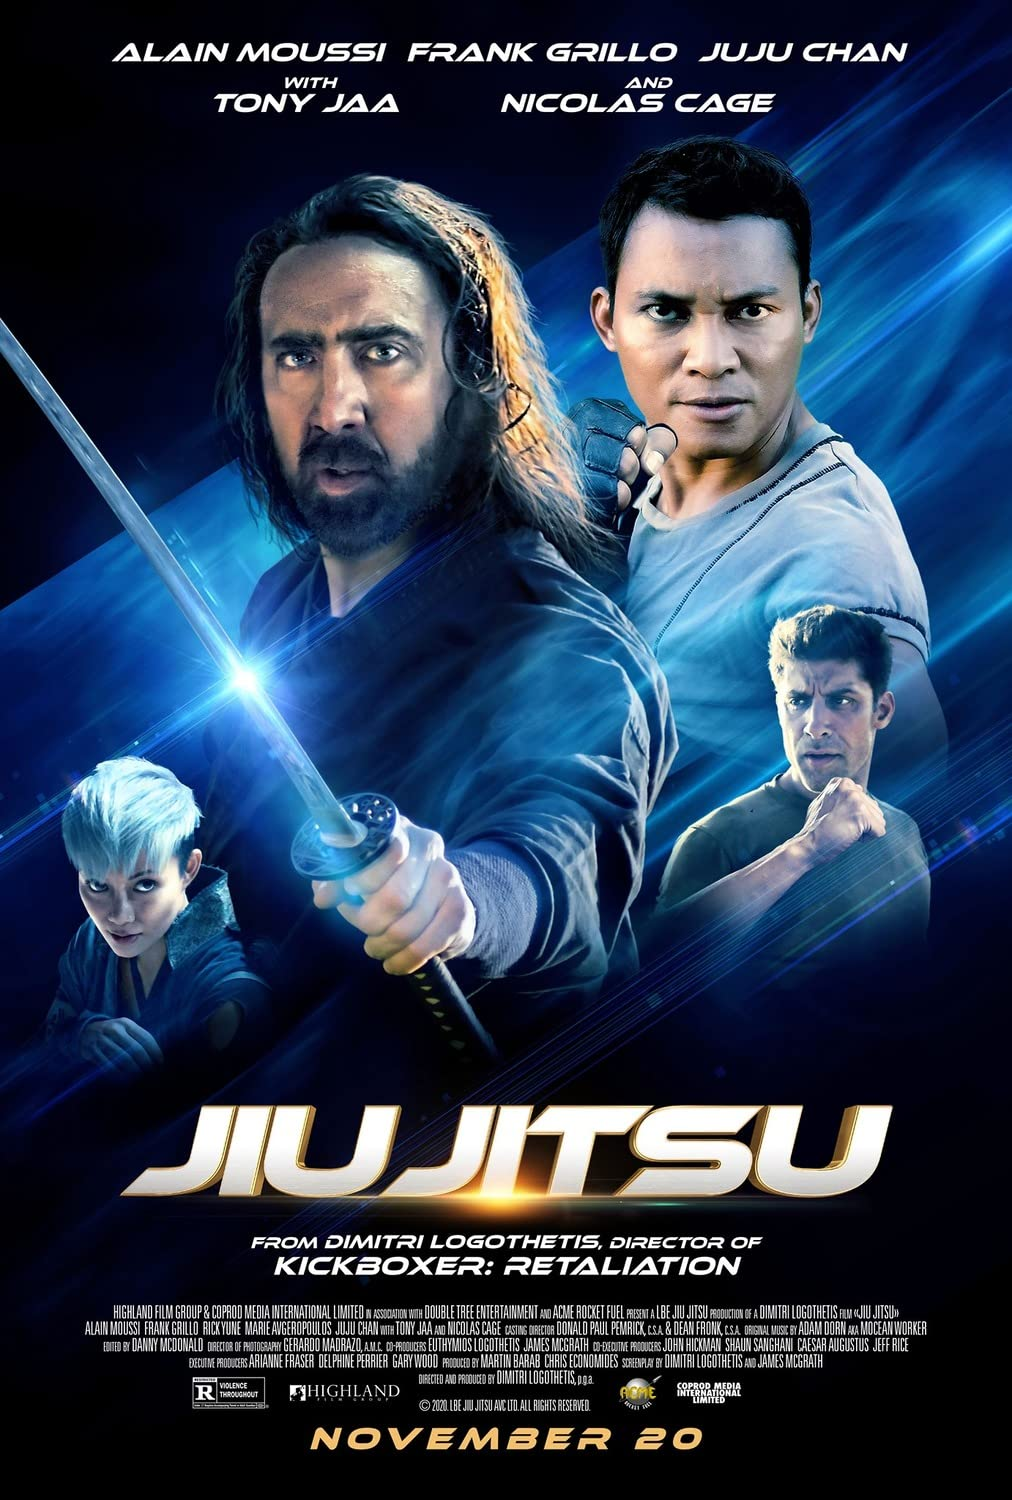 Jiu Jitsu (2020) English 720p HEVC HDRip  x265 AAC ESubs [550MB] Full Movie Download